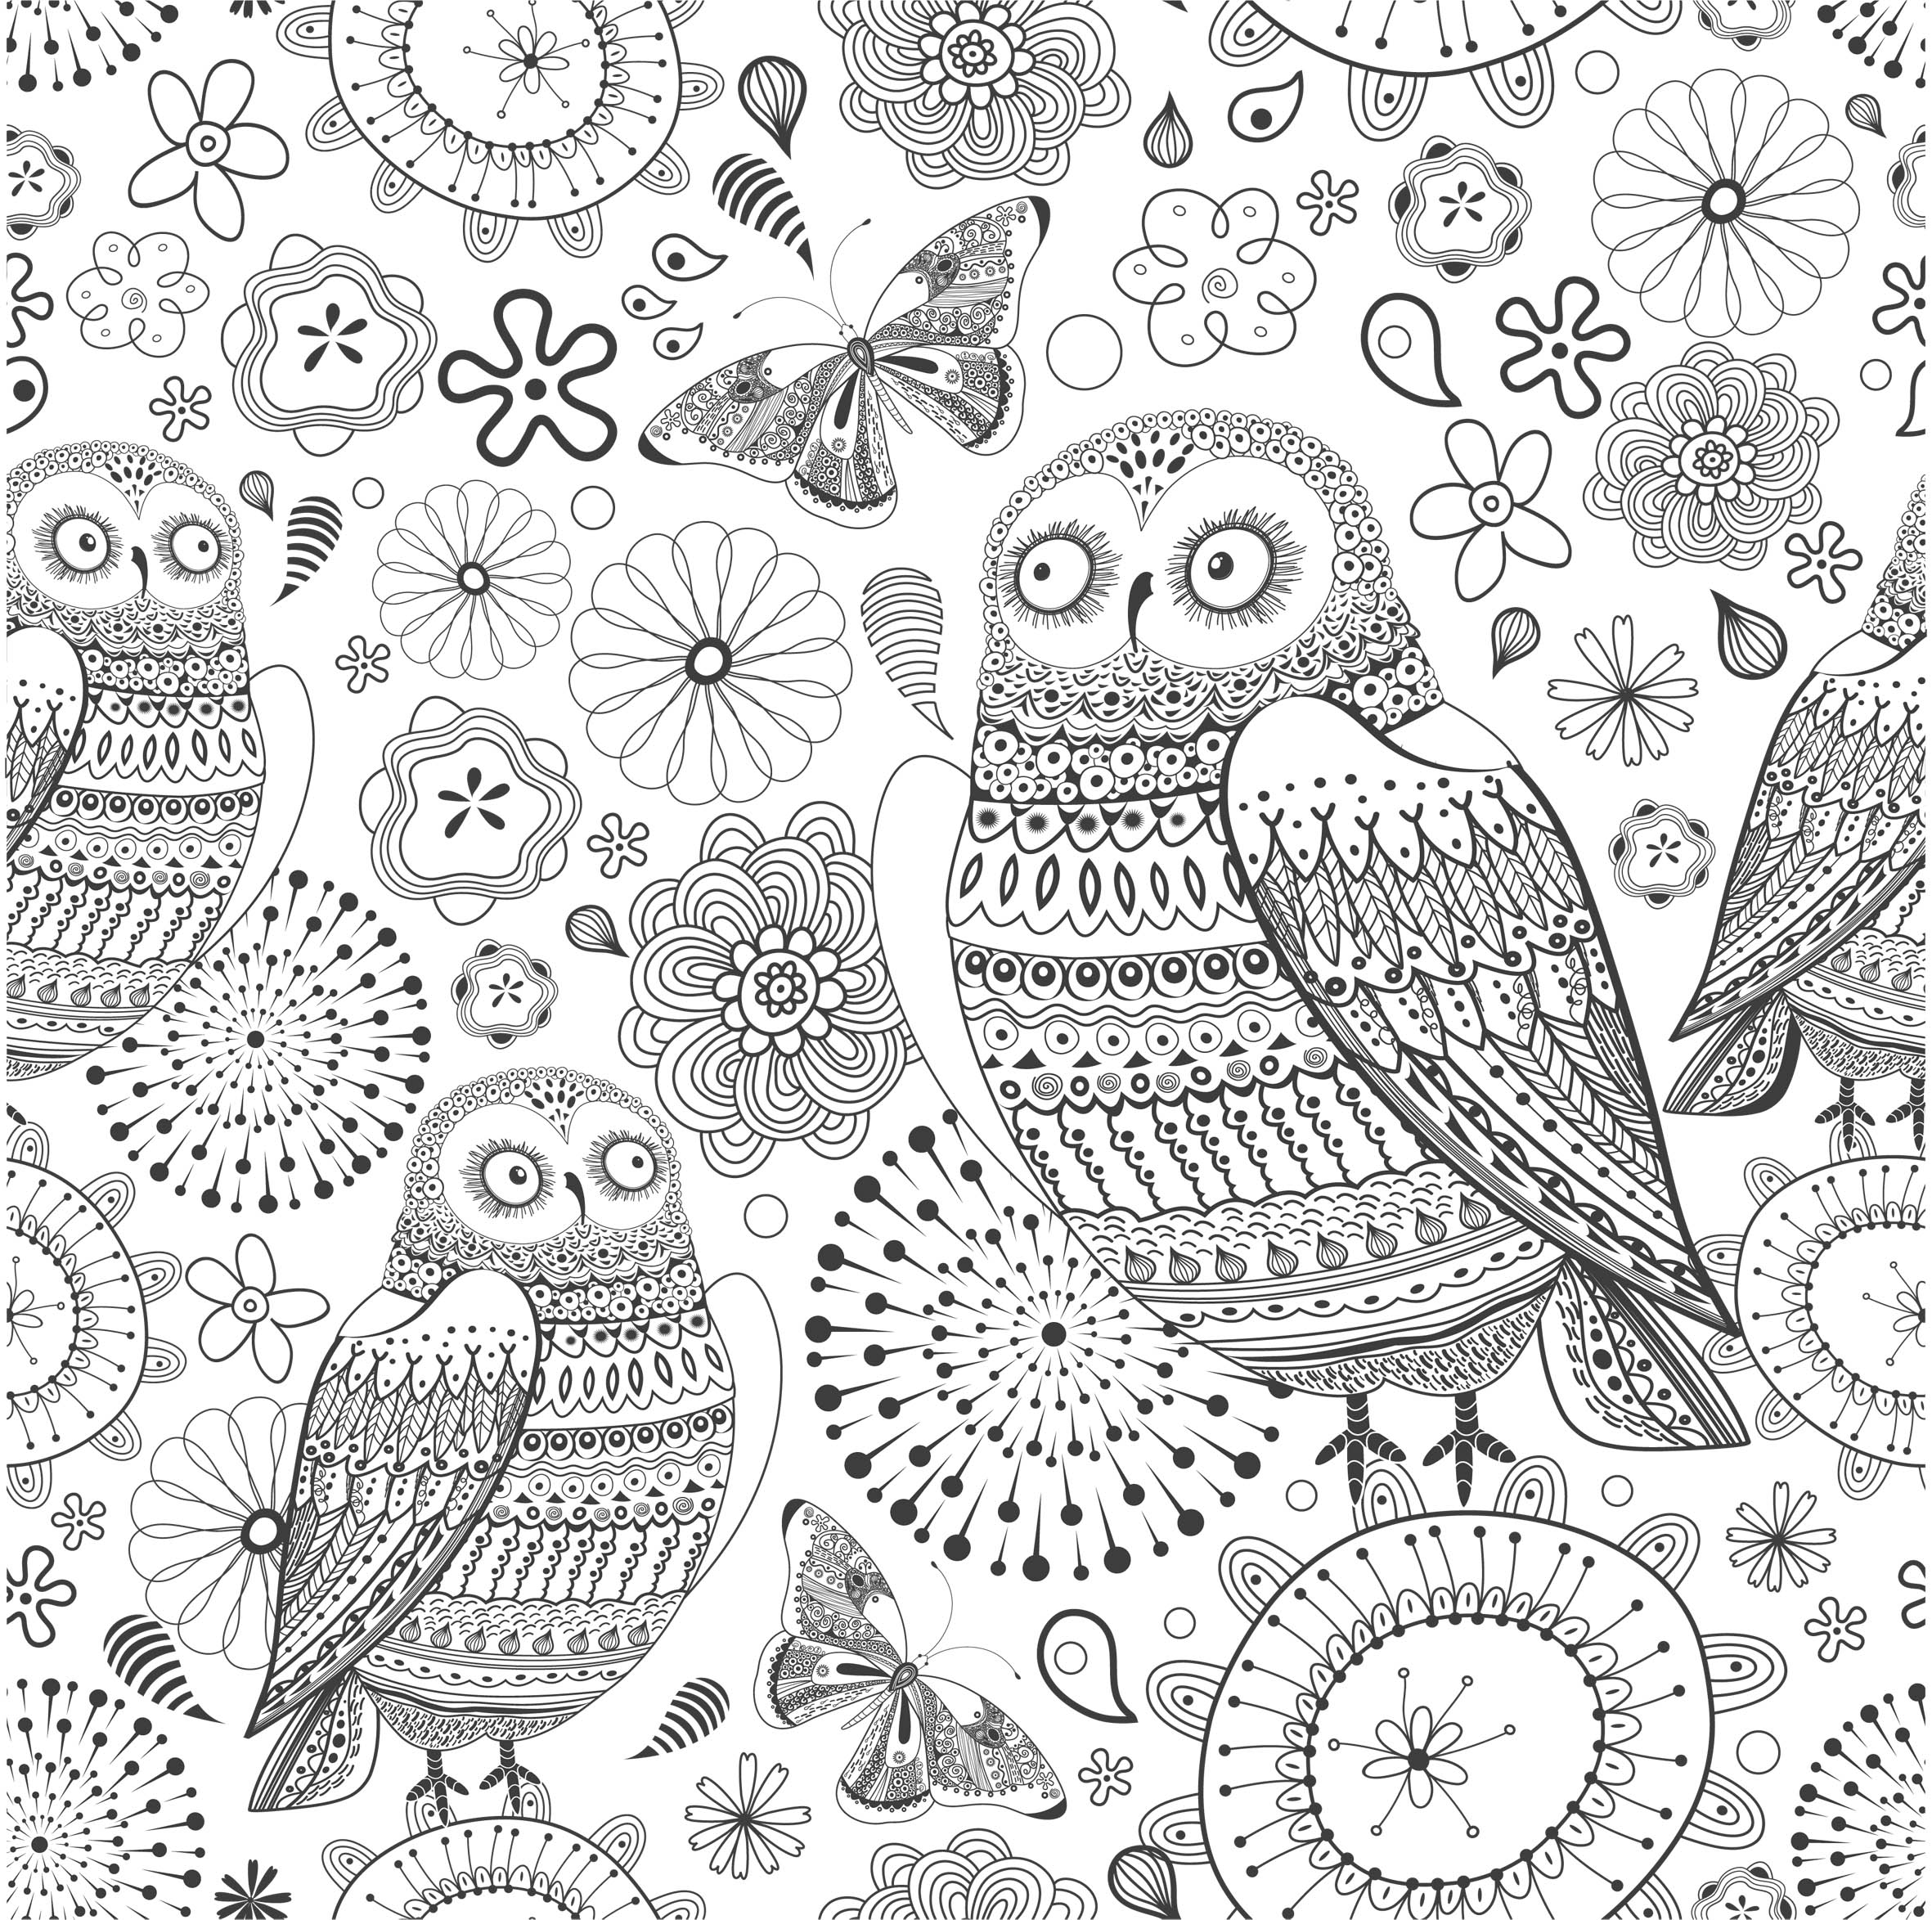 131 dessins de coloriage anti stress imprimer - Dessins anti stress ...